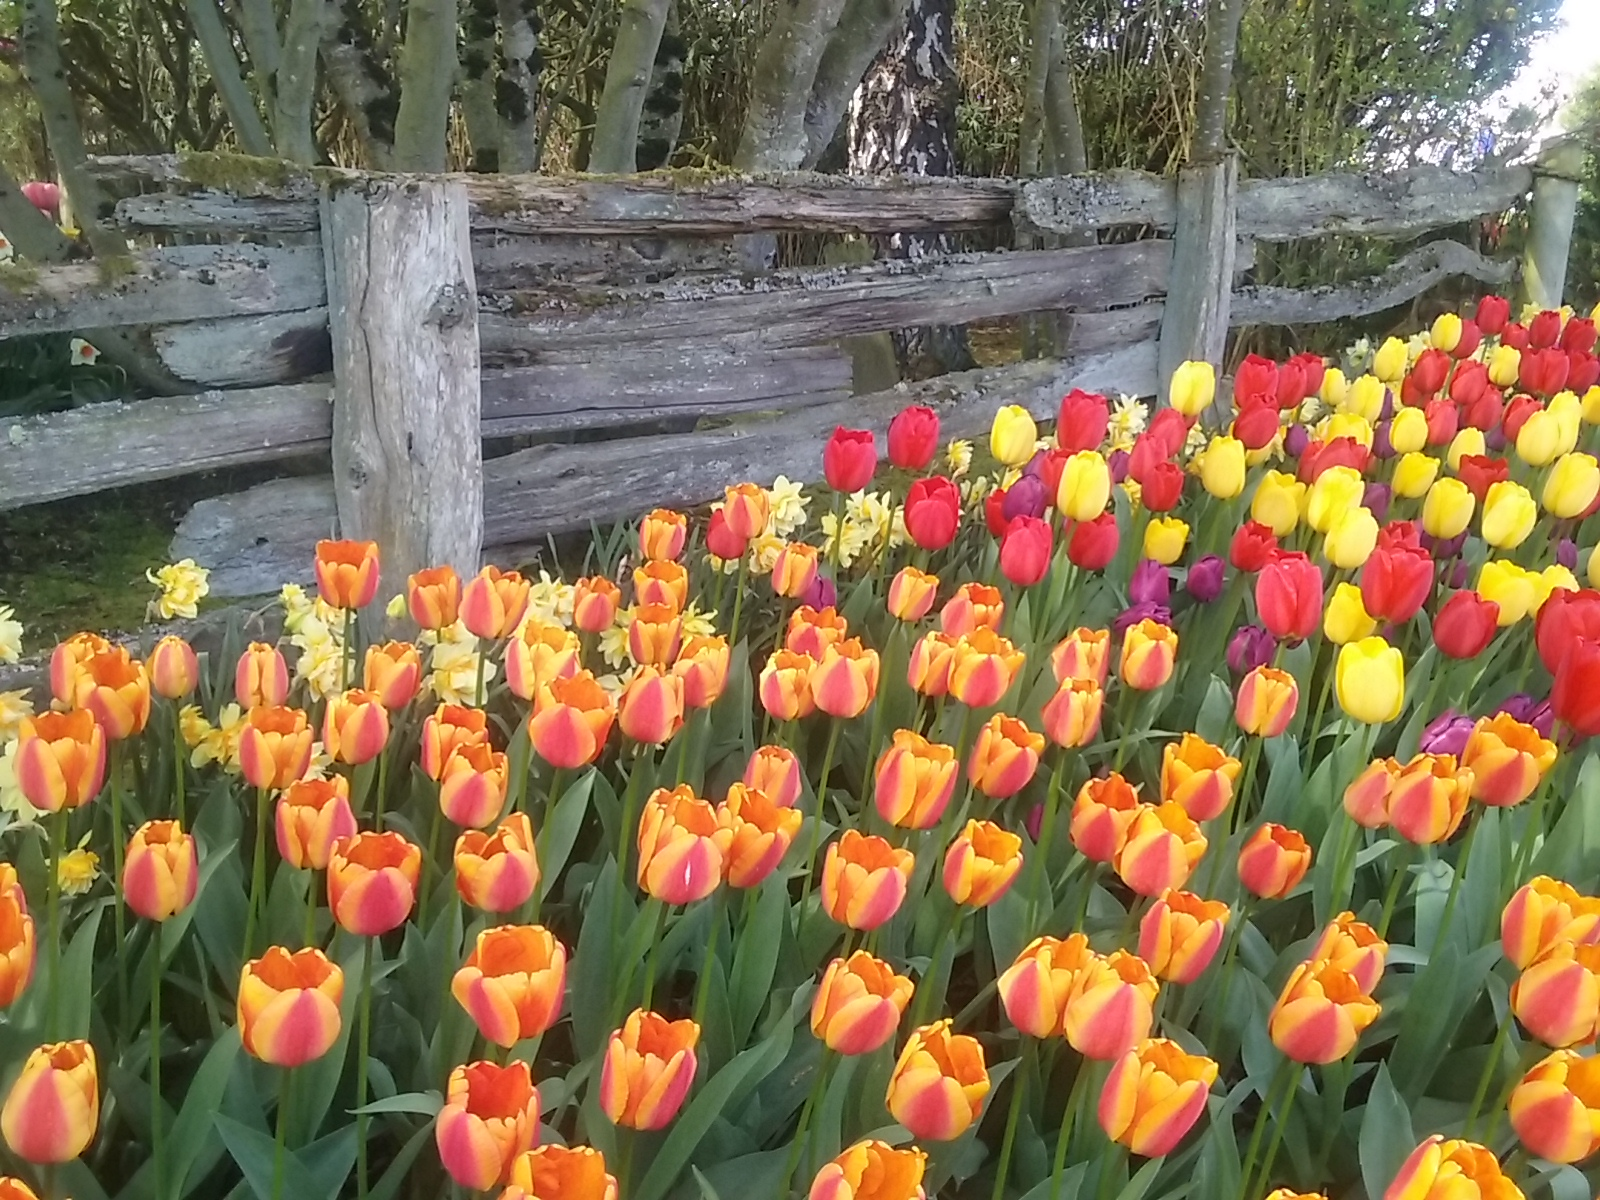 Tulips at Roozengarde